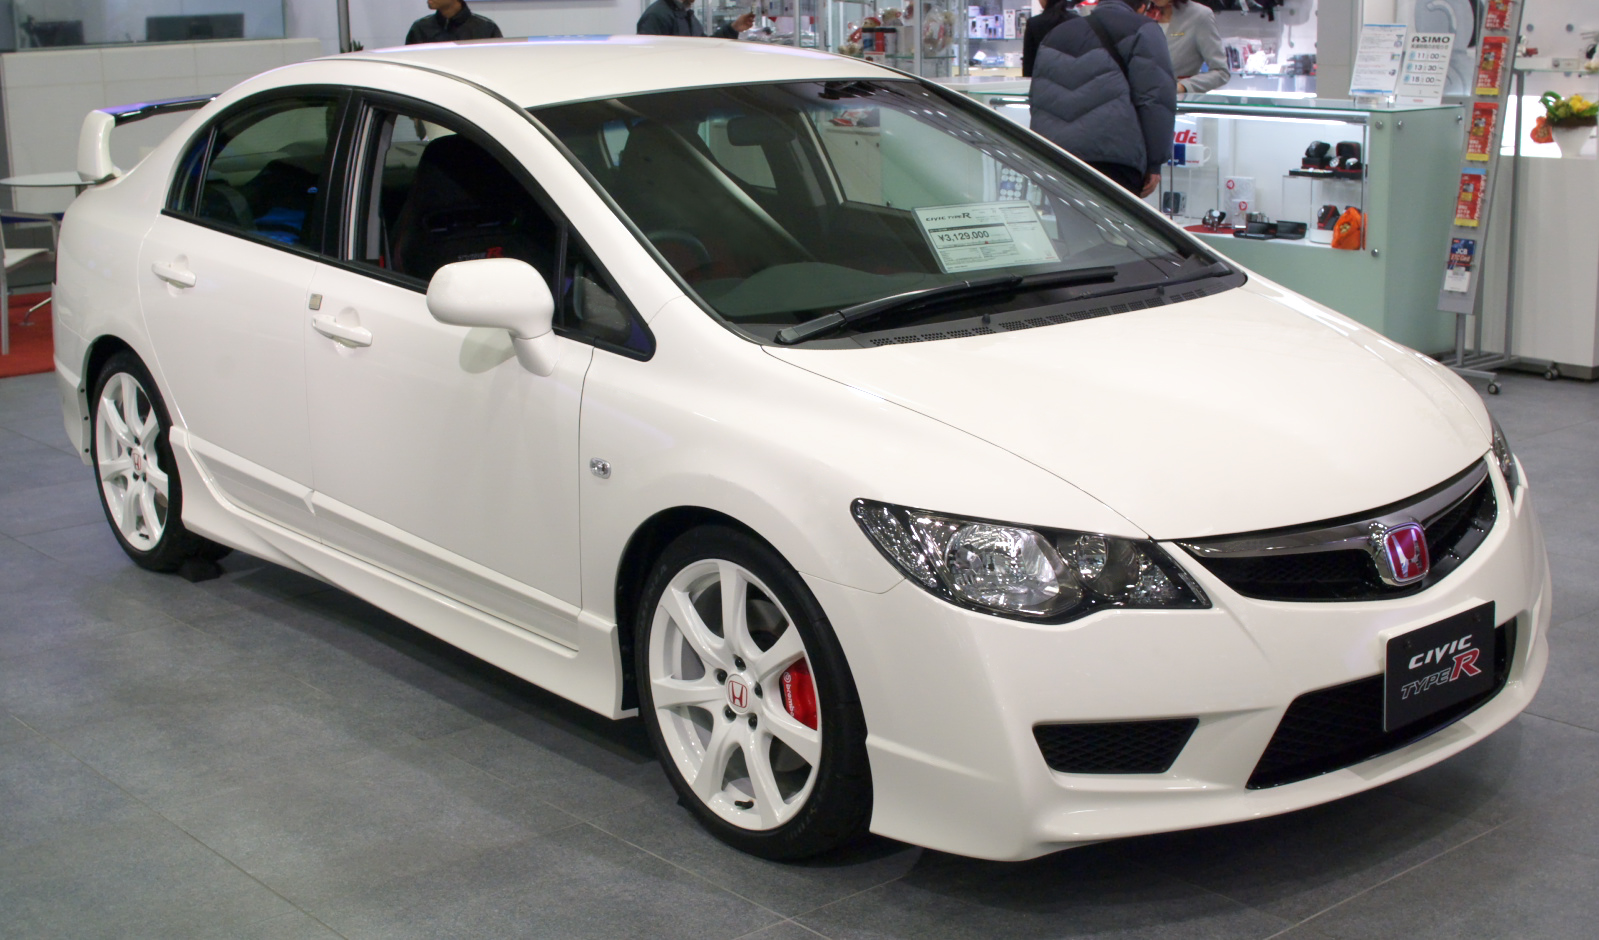 file 2007 honda civic typer 01 jpg wikipedia. Black Bedroom Furniture Sets. Home Design Ideas